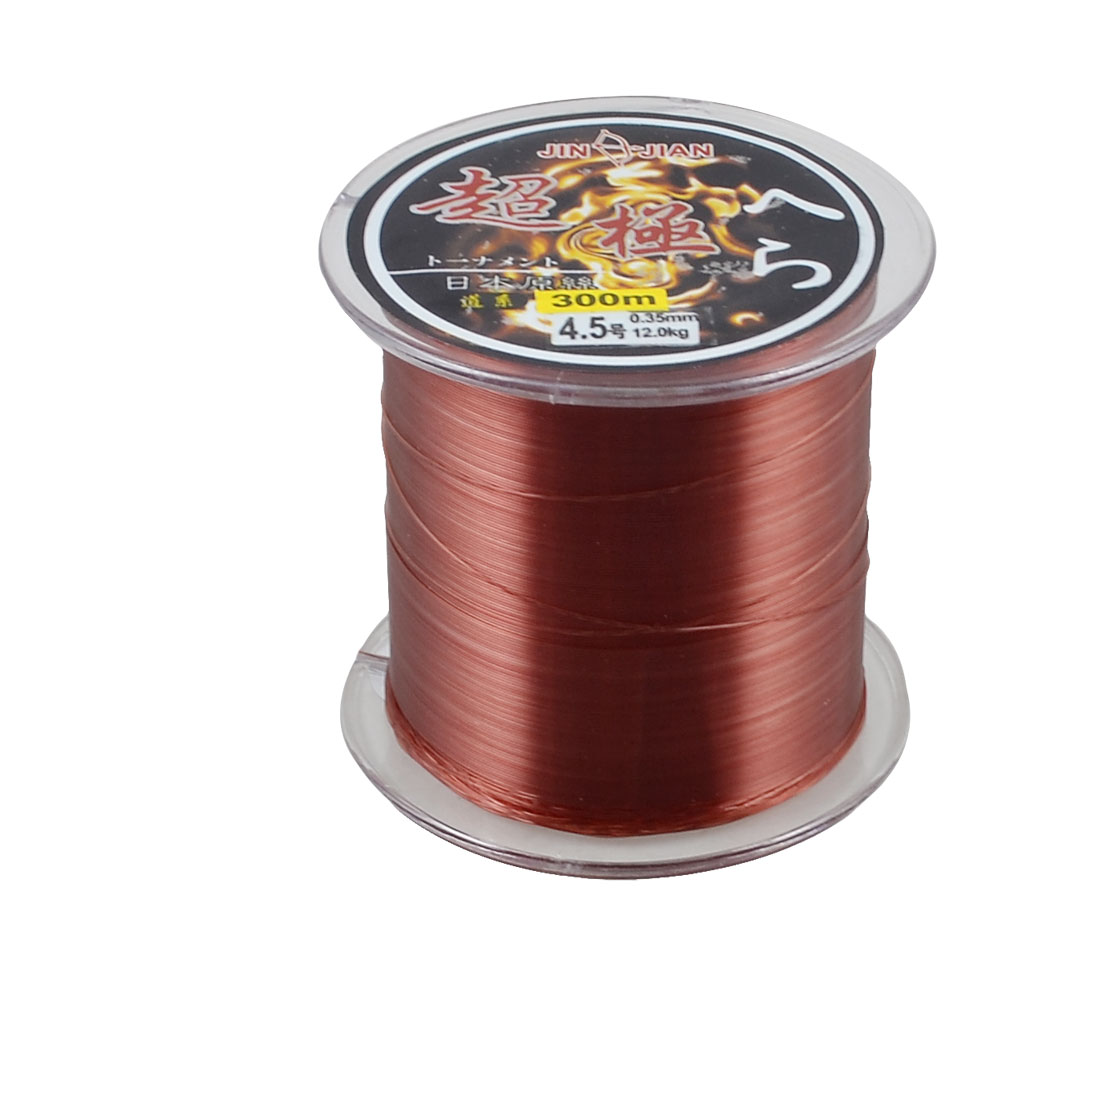 300m 0.35mm Dia 12Kg Burgundy Nylon Abrasion Resistance Fishing Spool Line 4.5#